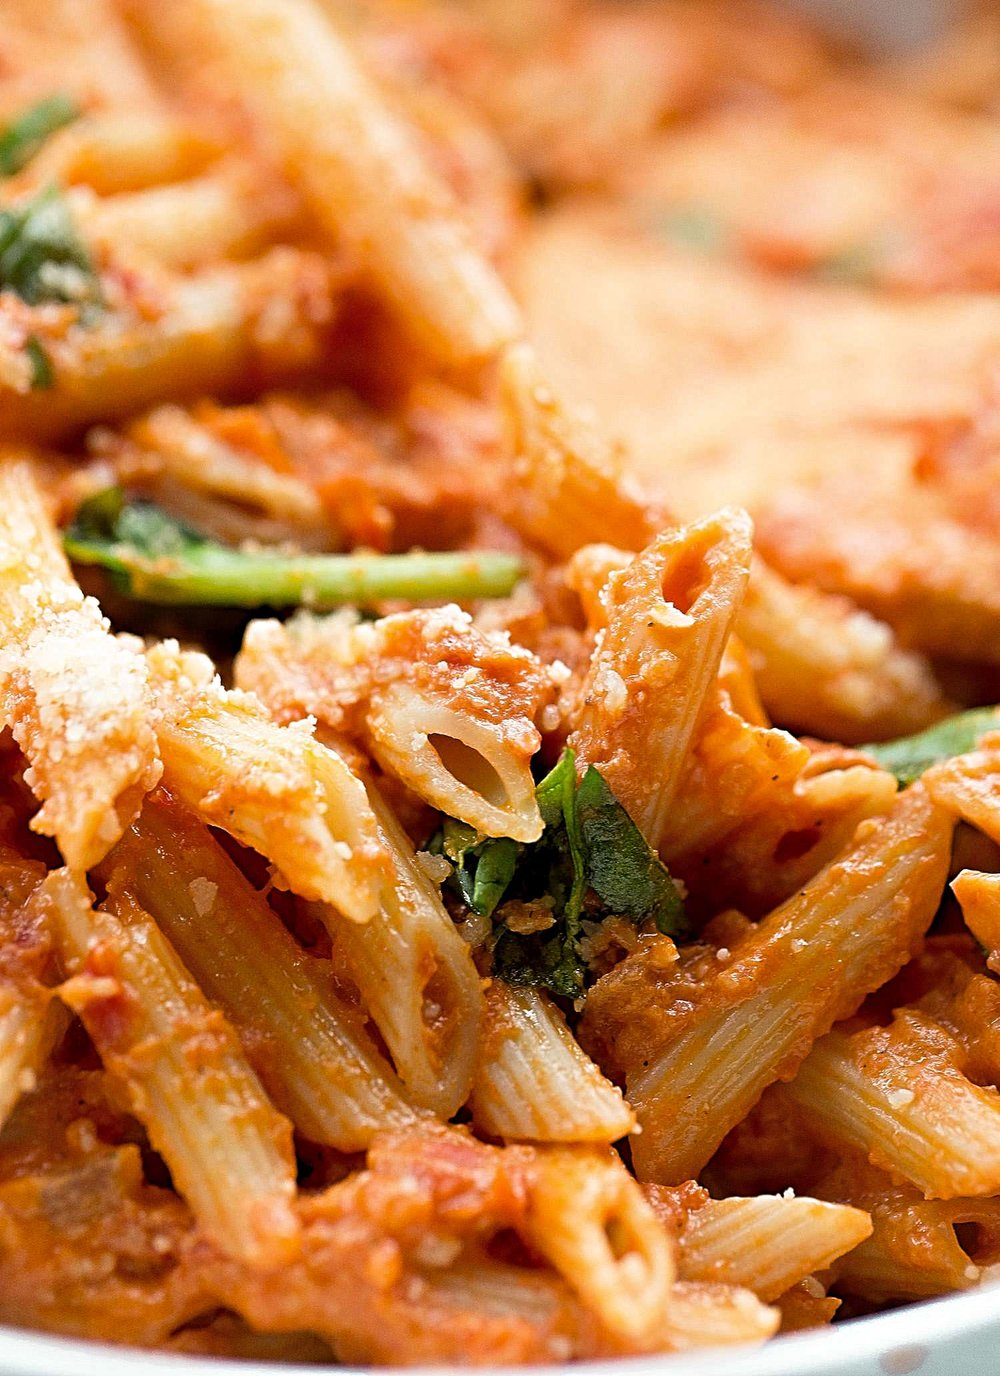 A Very Good Penne Alla Vodka: indulge in this easy, rich and creamy pasta dish made with crushed tomatoes and heavy cream. | TrufflesandTrends.com